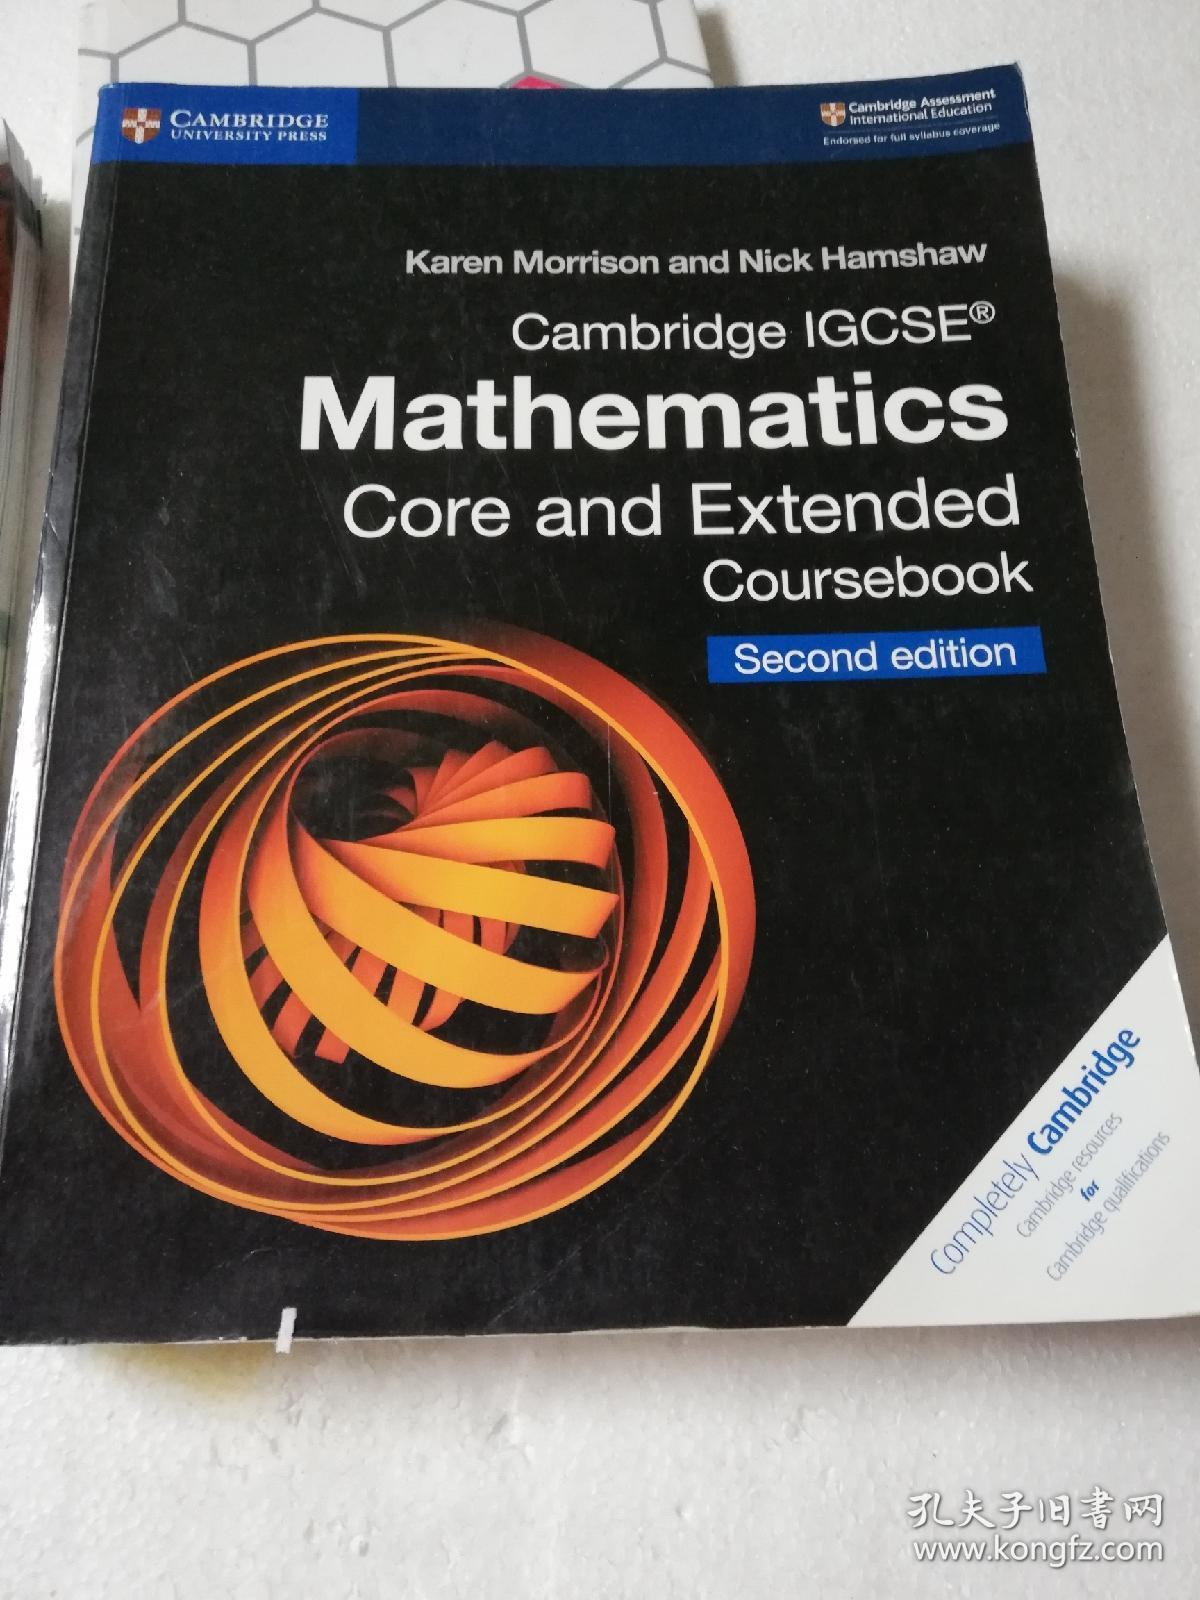 Cambridge IGCSE® Mathematics Core and Extended Coursebook Second edition